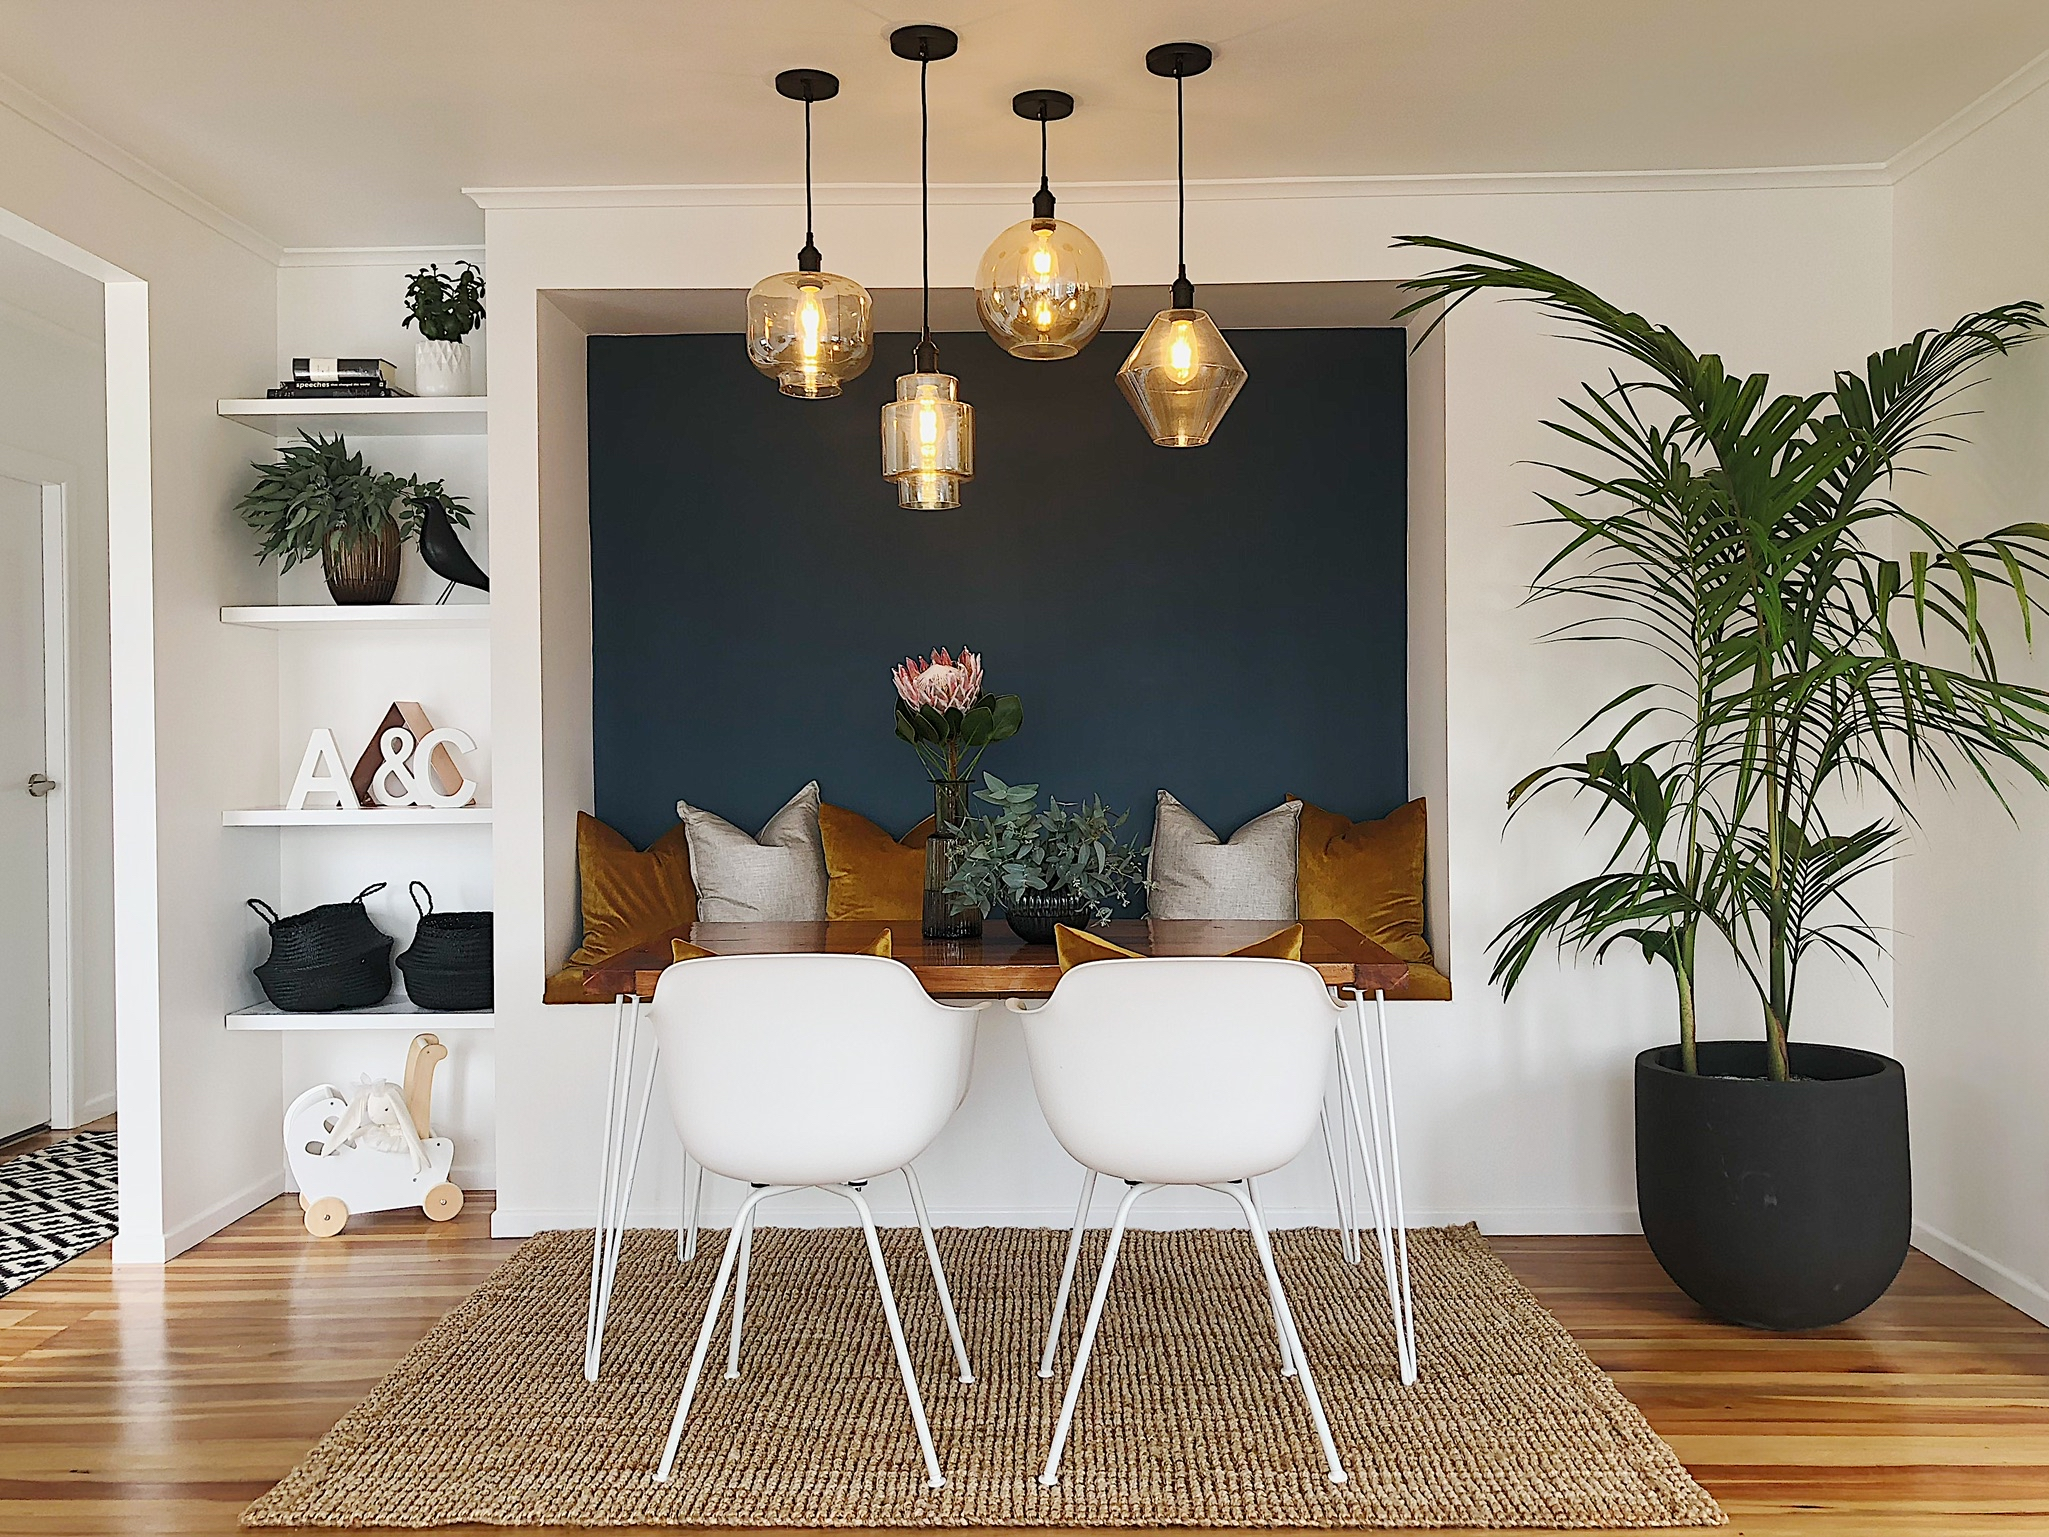 Pearson and Projects Relocatable Reno Dining Project The Block NZ Reveal Black Reef Mt Aspiring Pot Plant Palm.jpg